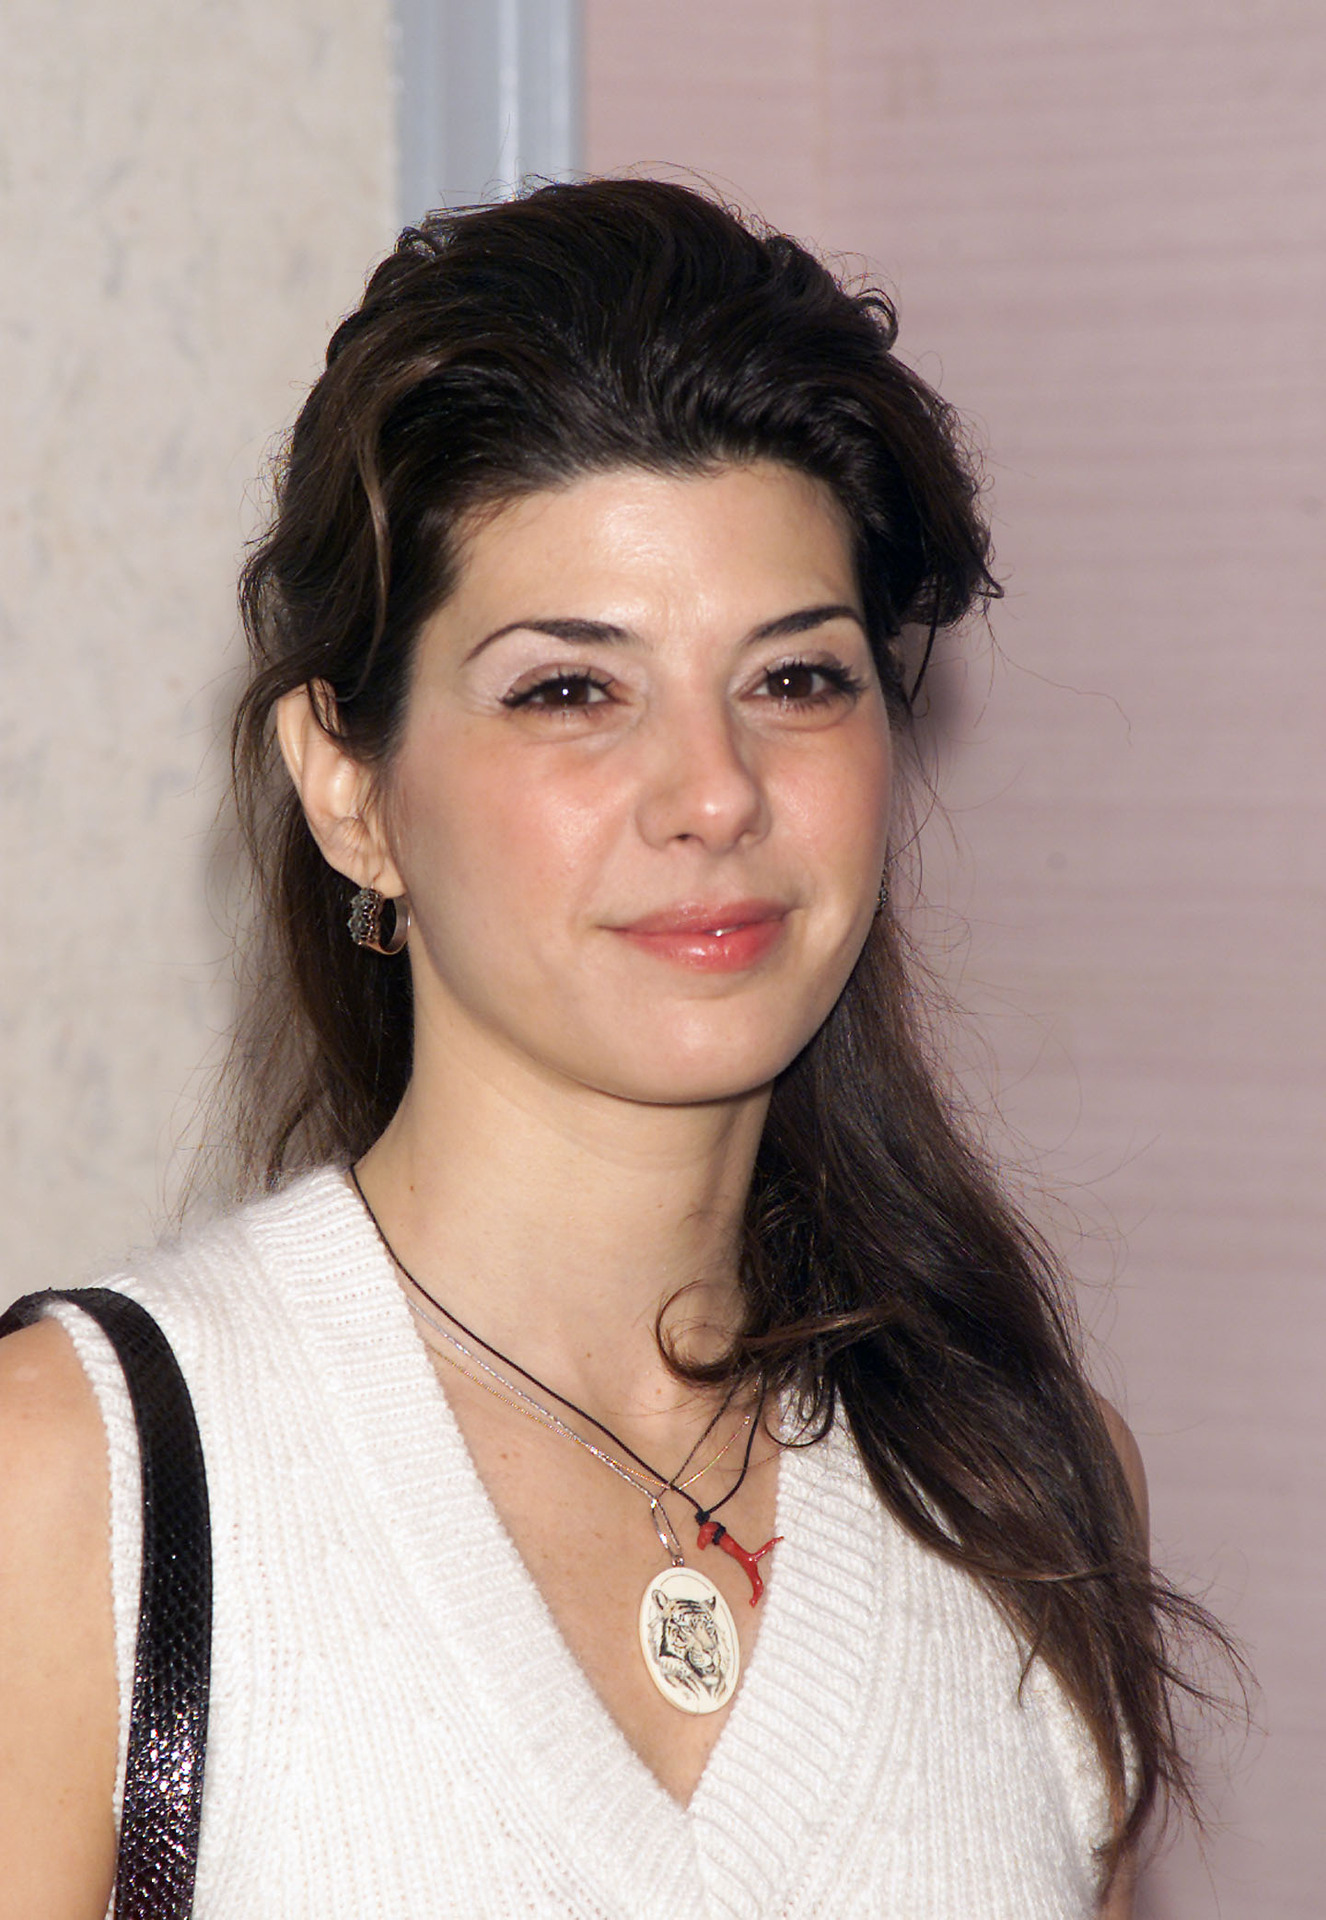 how tall is marisa tomei